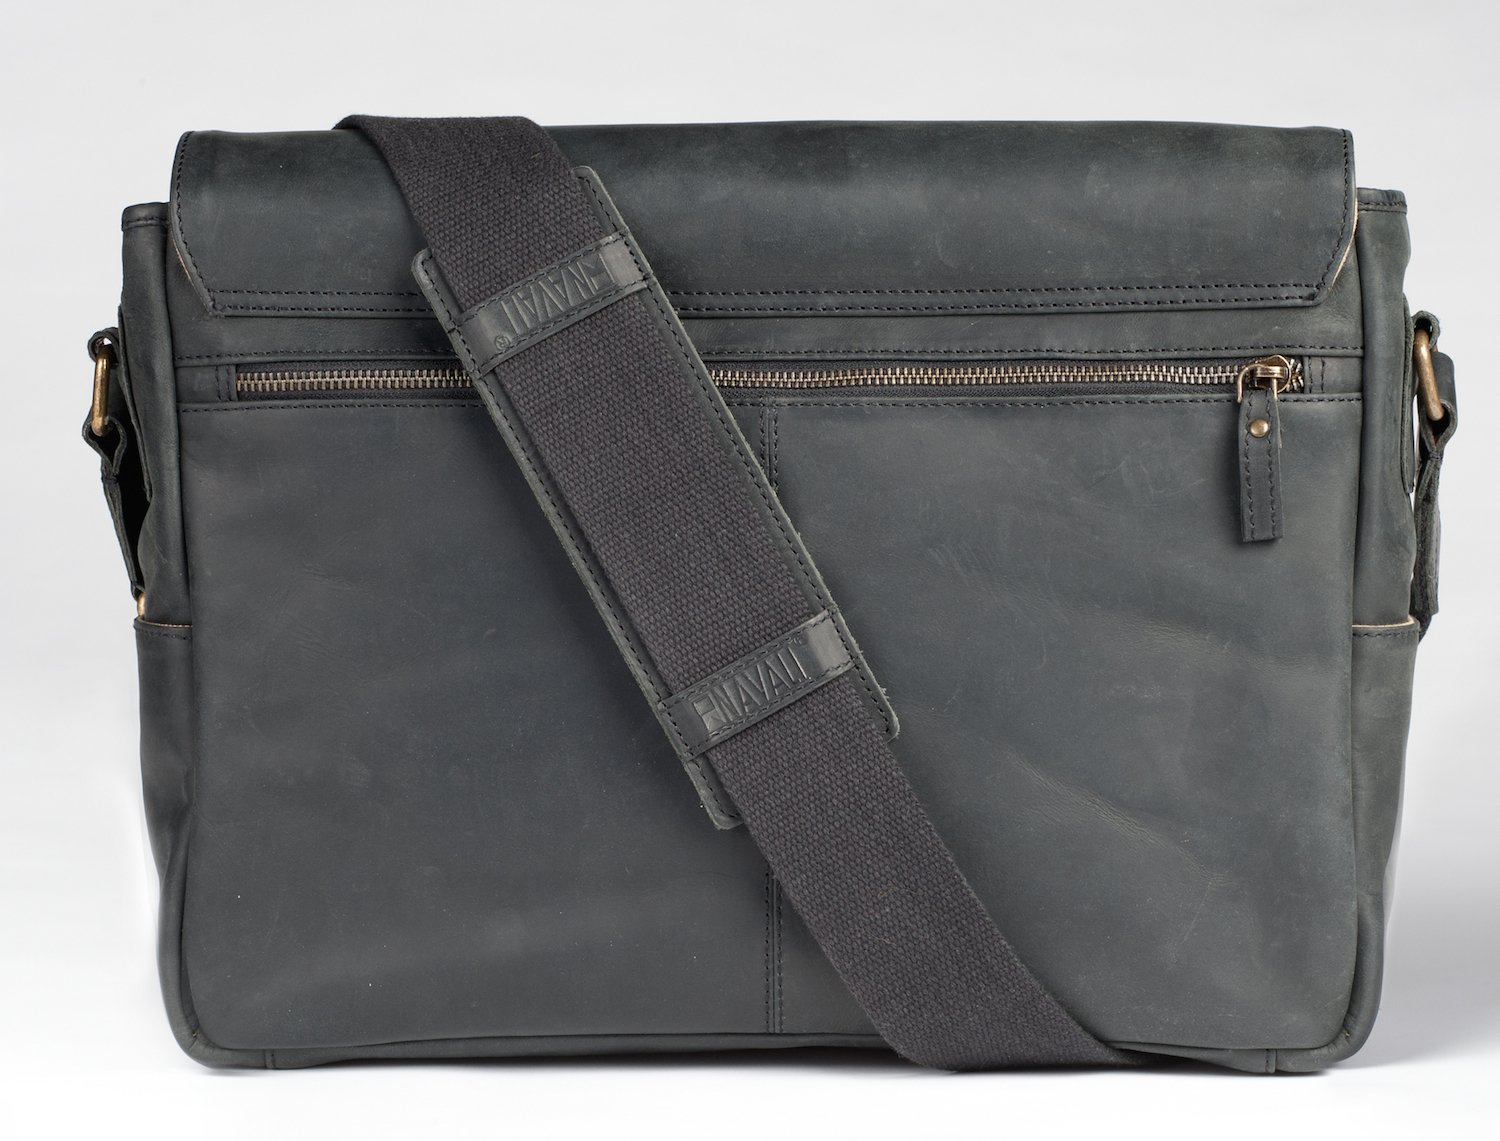 e06fb02e0c79 Amazon.com  Navali Mainstay Leather Laptop Messenger Bag - Crazy Horse  Leather - Perfect for 13 inch 15 inch Laptops - Black  Computers    Accessories